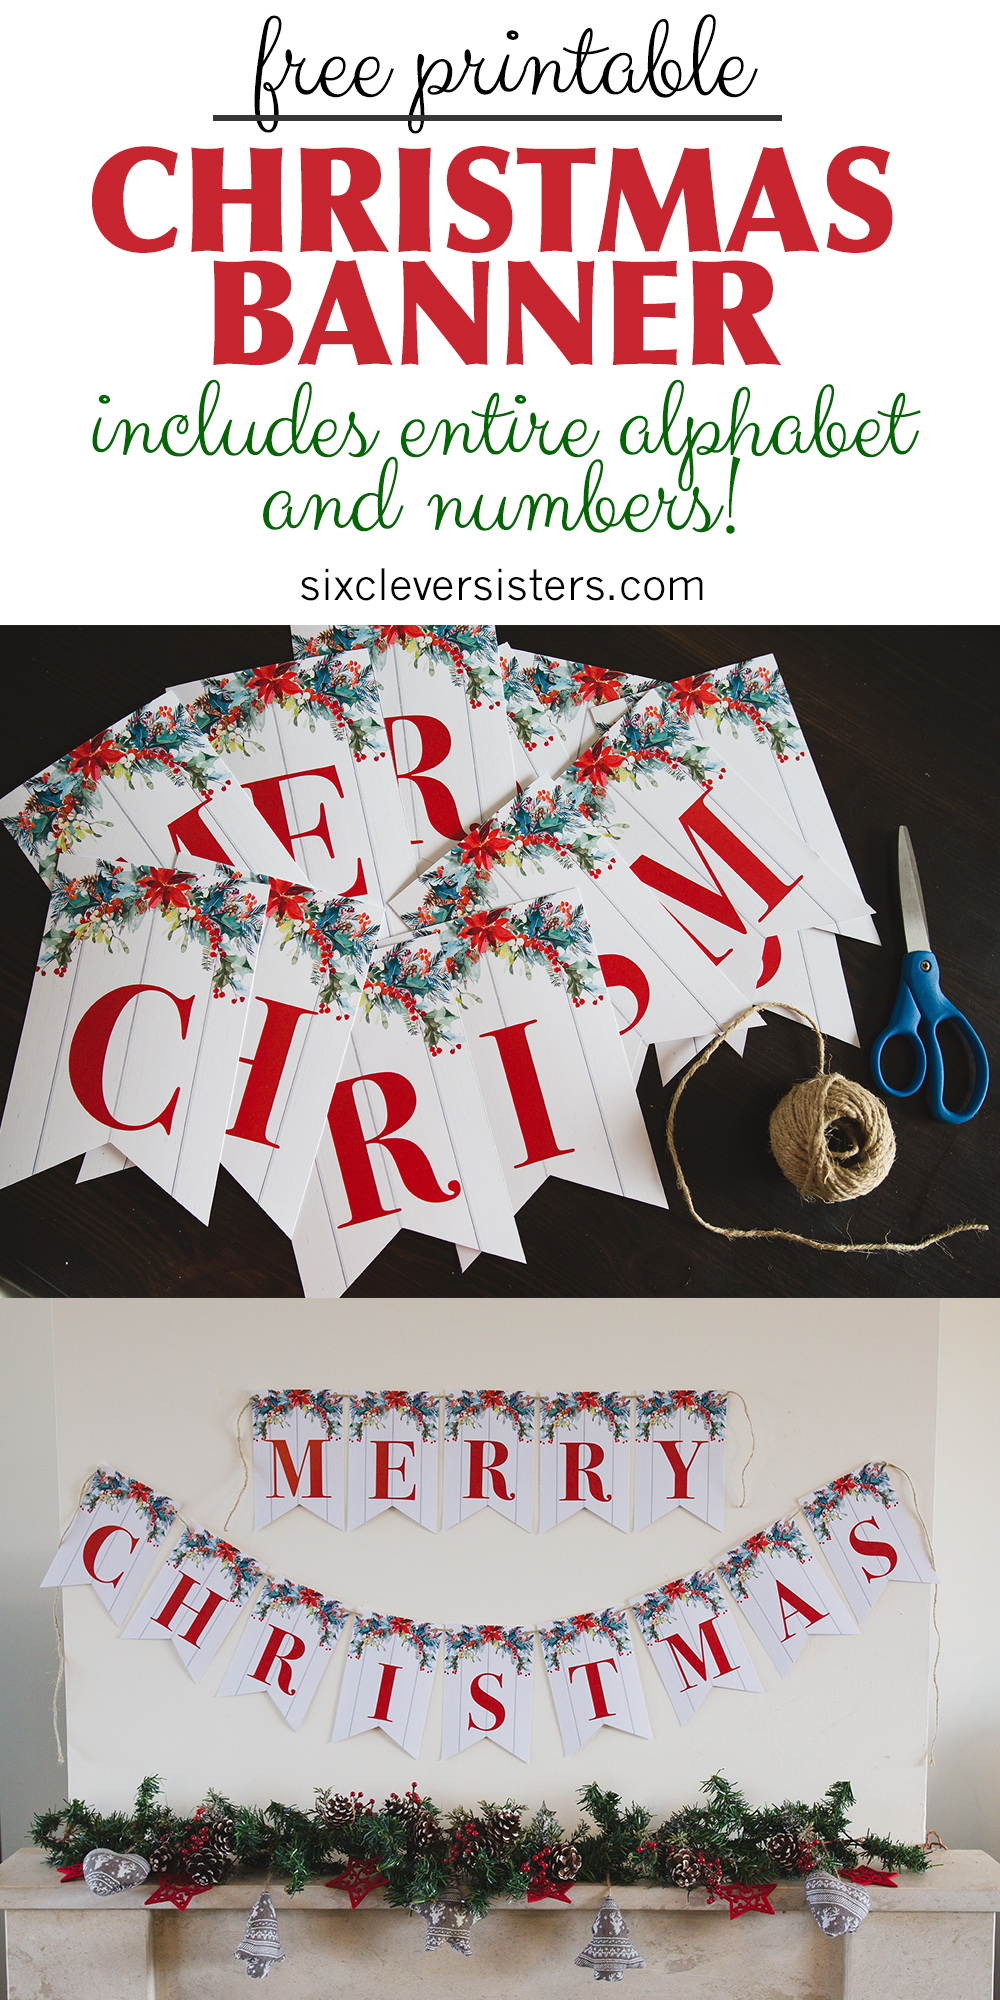 photograph relating to Printable Merry Christmas Banner identify Printable Merry Xmas Banner - 6 Sensible Sisters